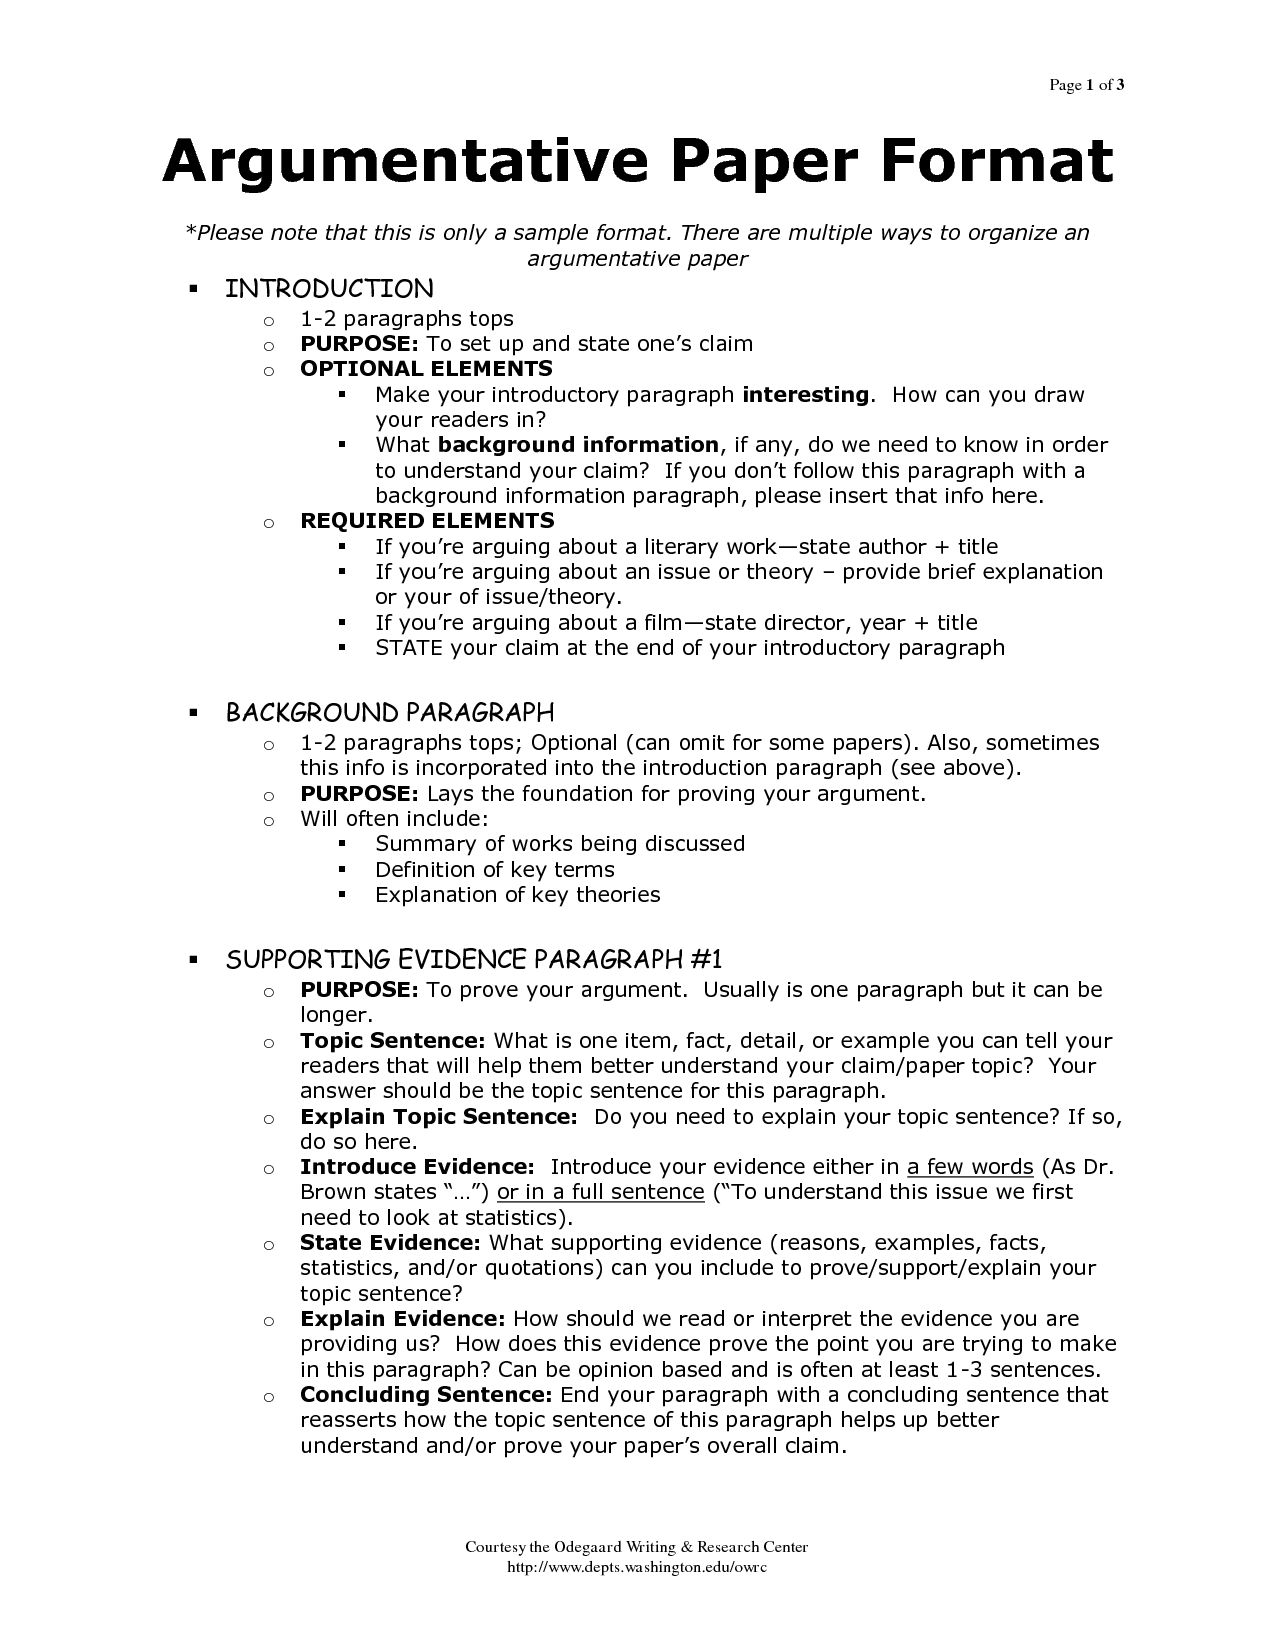 004 Structure Of An Argumentative Essay Example Breathtaking Outline (advanced Module) Full